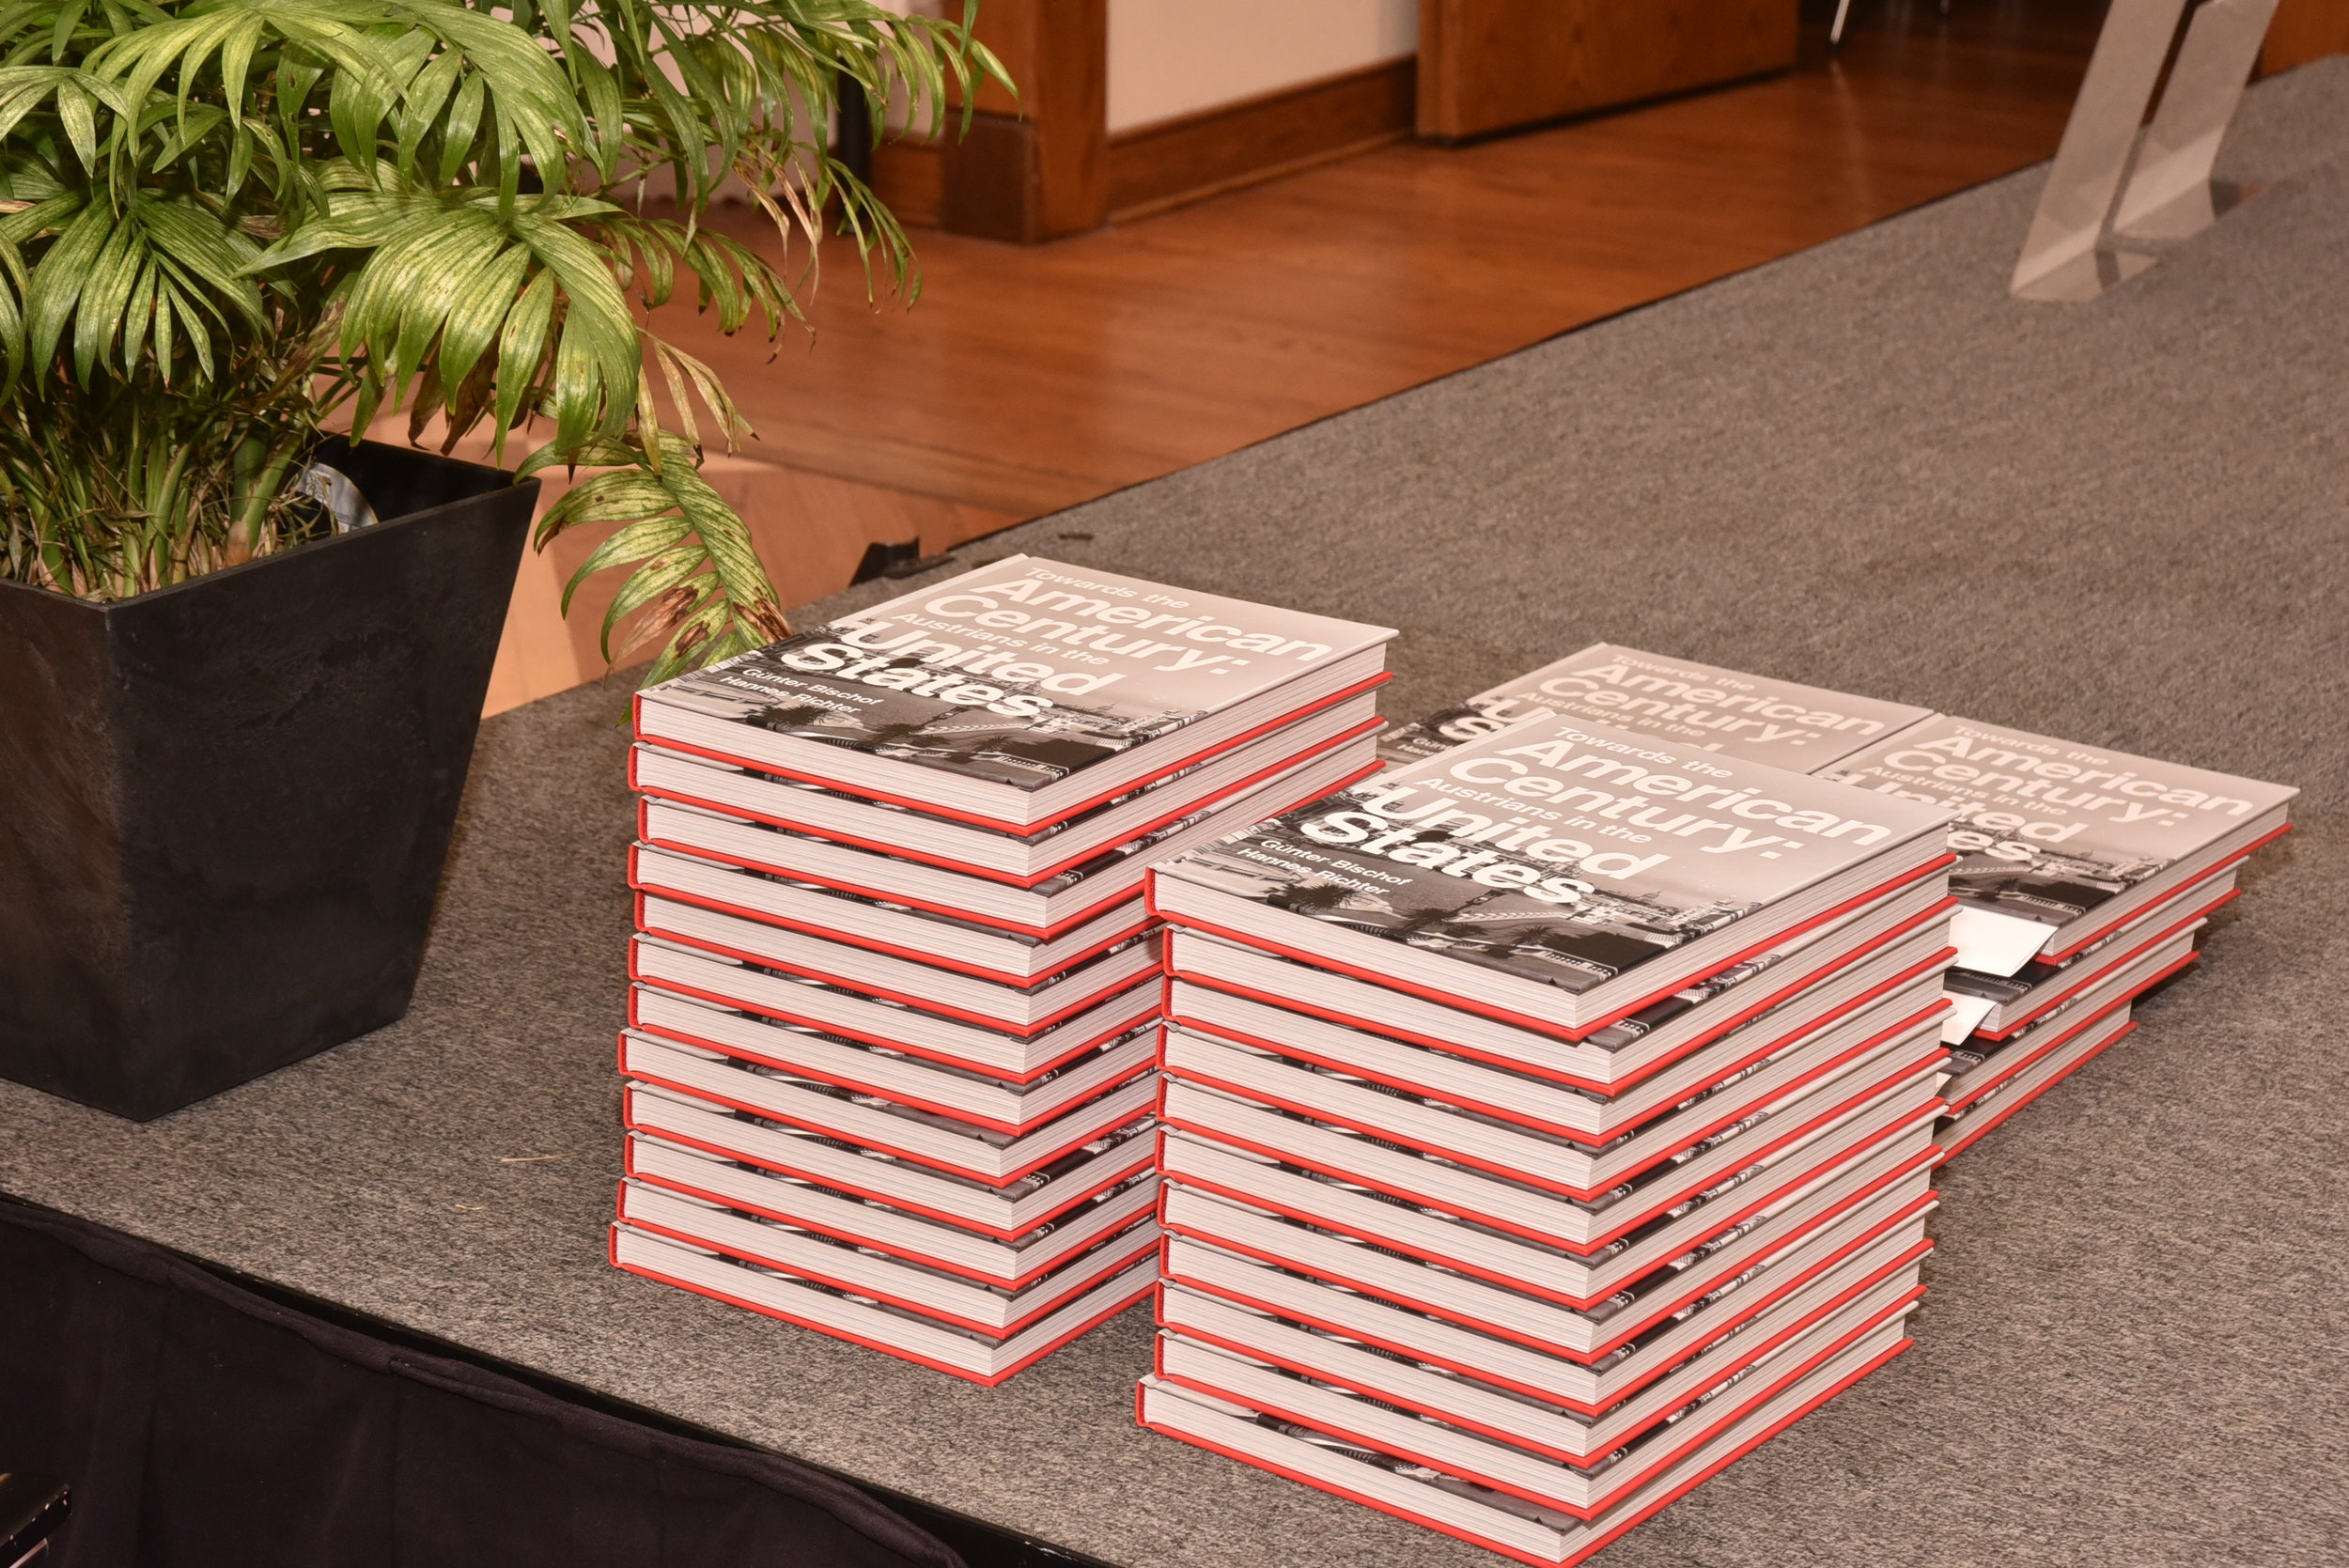 The book  Towards the American Century: Austrians in the United States  accompanies the exhibit and went on sale that evening.   Photo: Peter Alunans